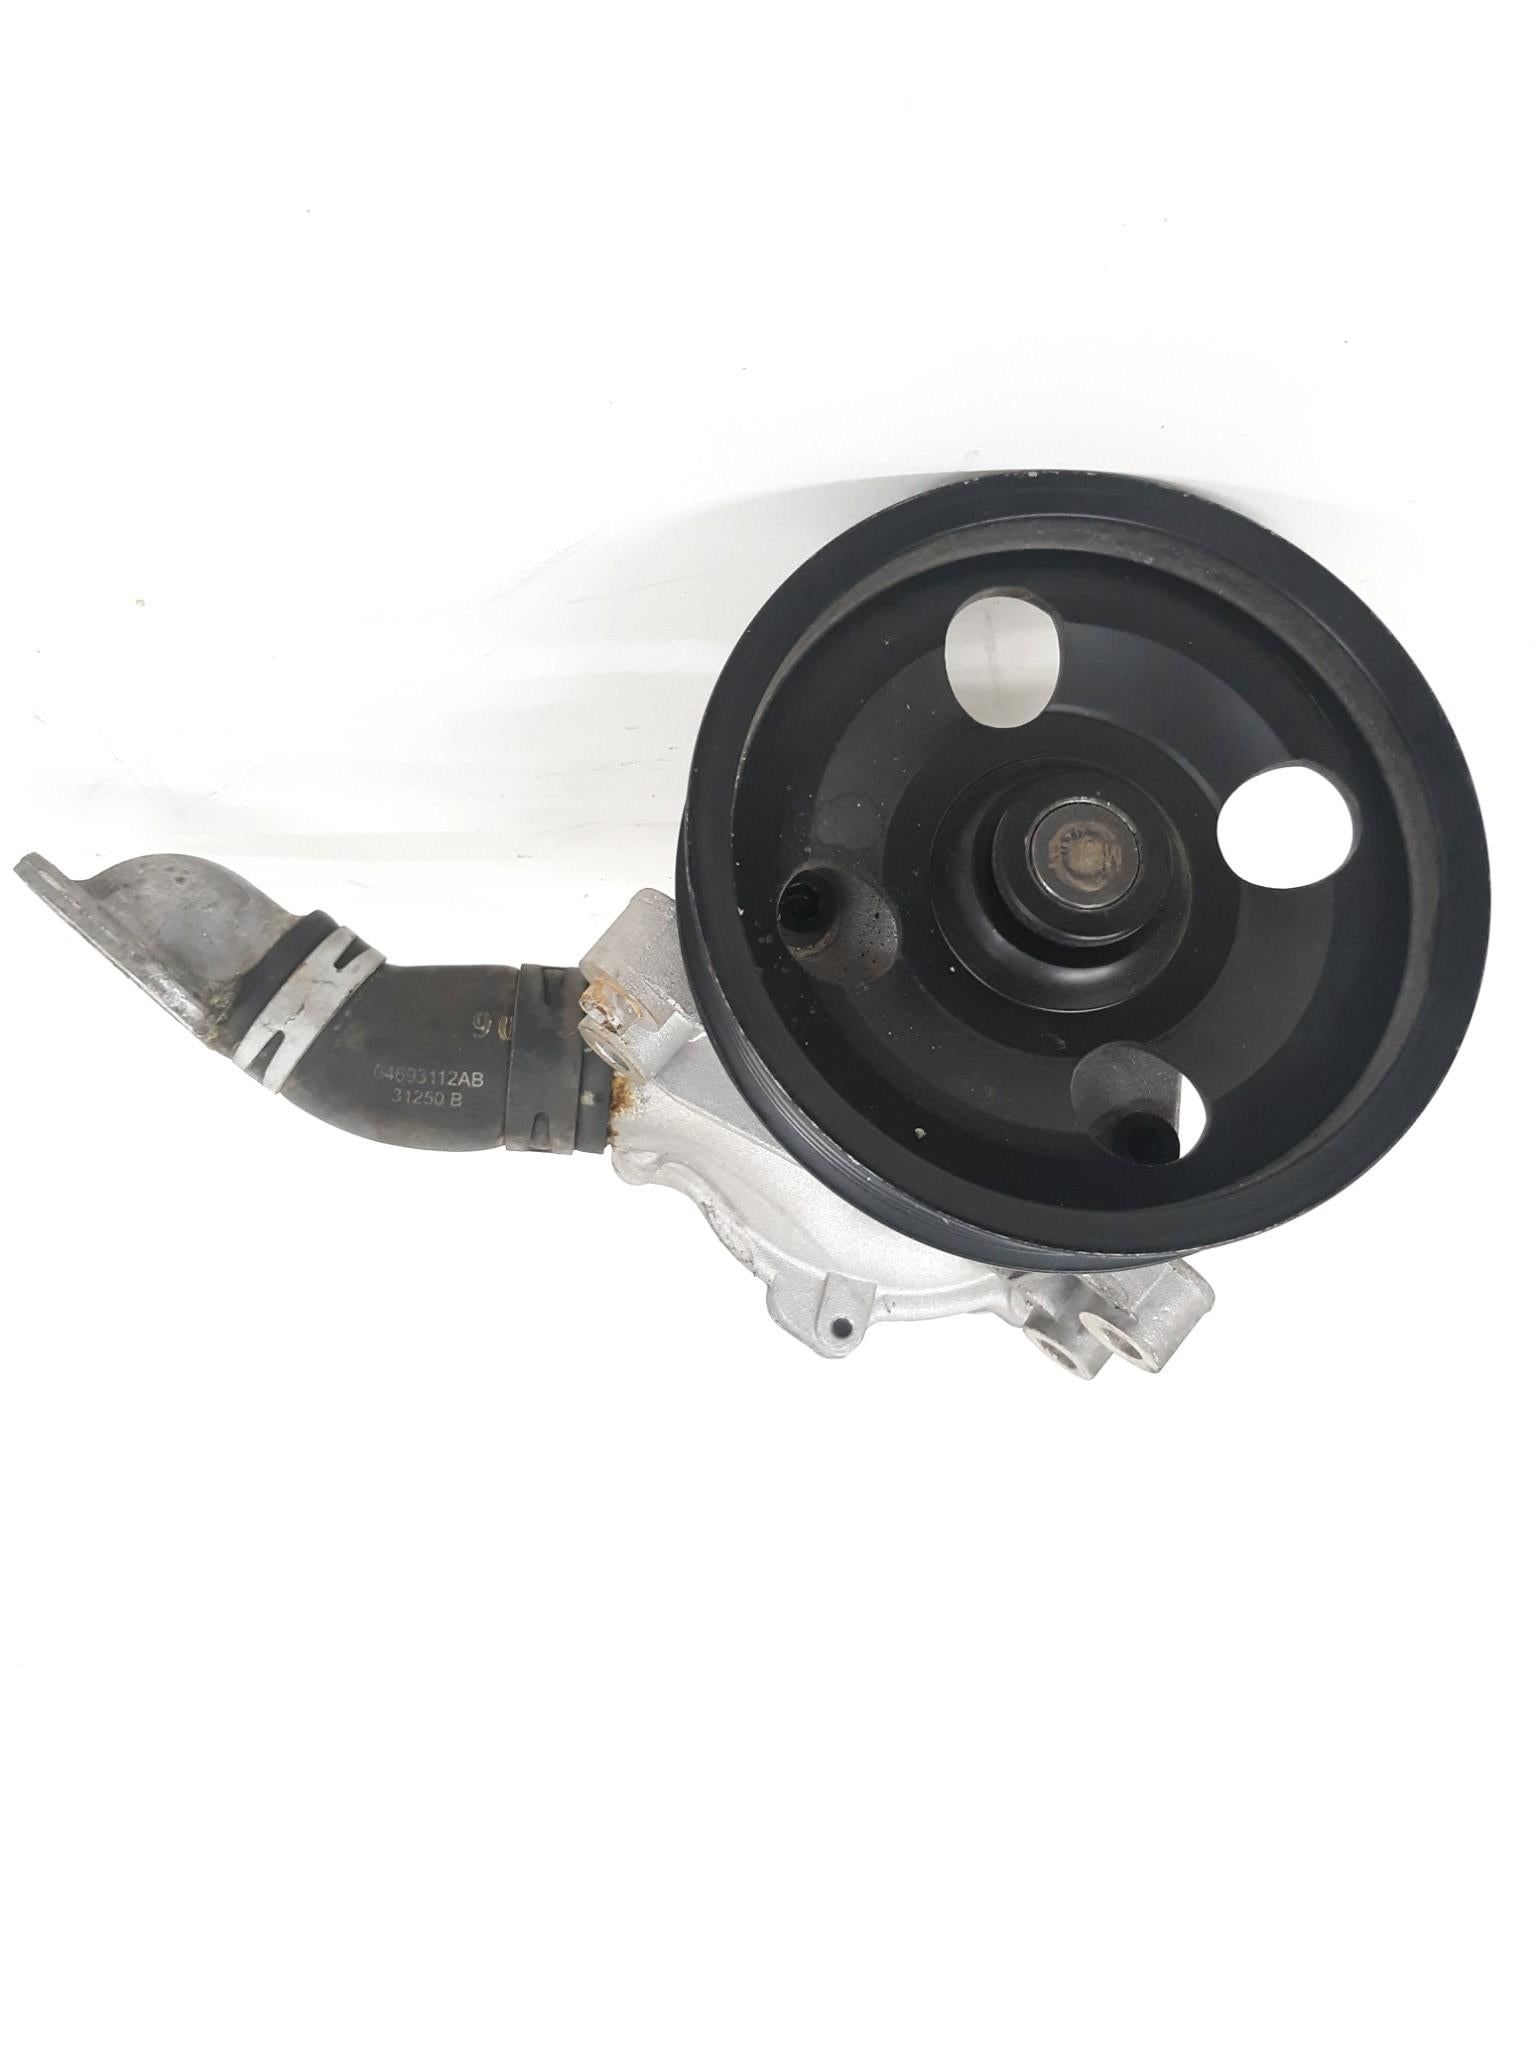 2002-2008 MINI COOPER R50 R52 ENGINE WATER PUMP ASSEMBLY 04693112AB OEM - Click Receive Auto Parts